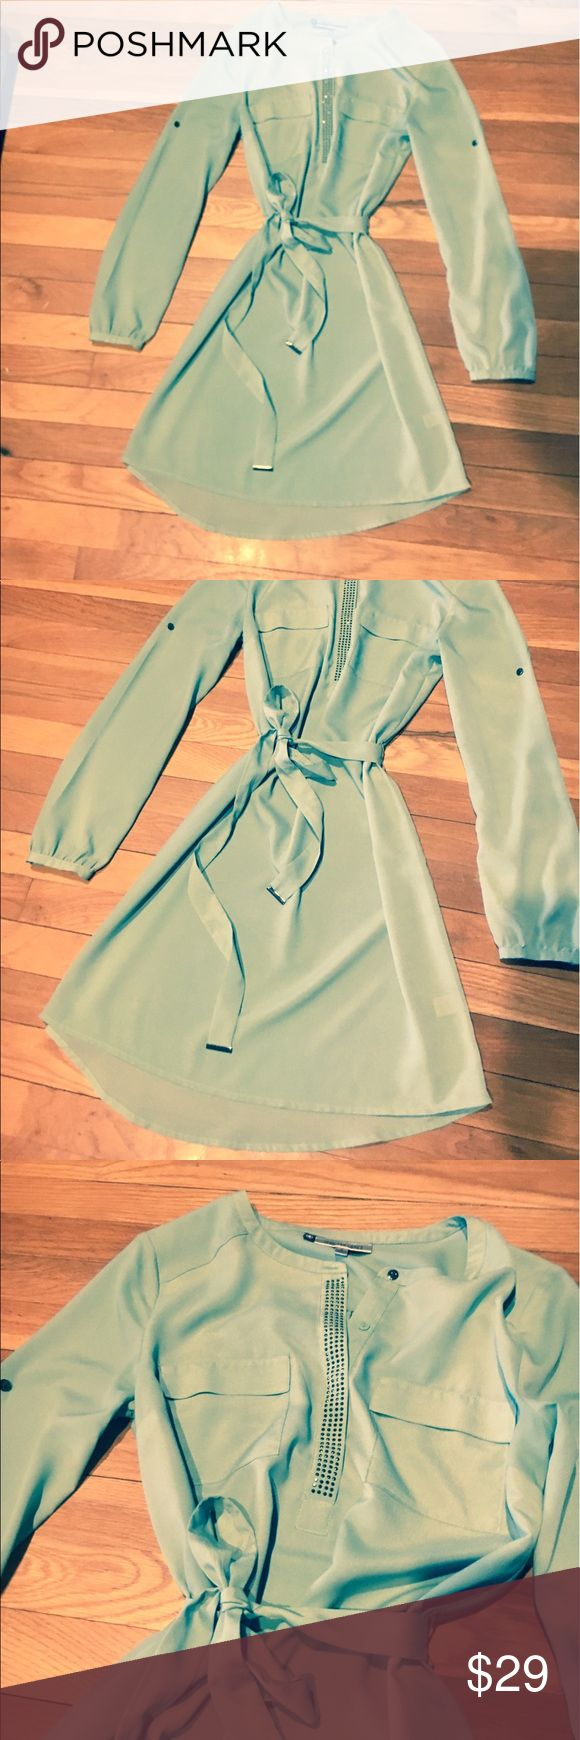 Nwot mint green dress Beautiful dress with jeweled detail in the front. Tie waist. The dress definitely needs a slip under it . But it's much prettier in person Jennifer Lopez Dresses Midi